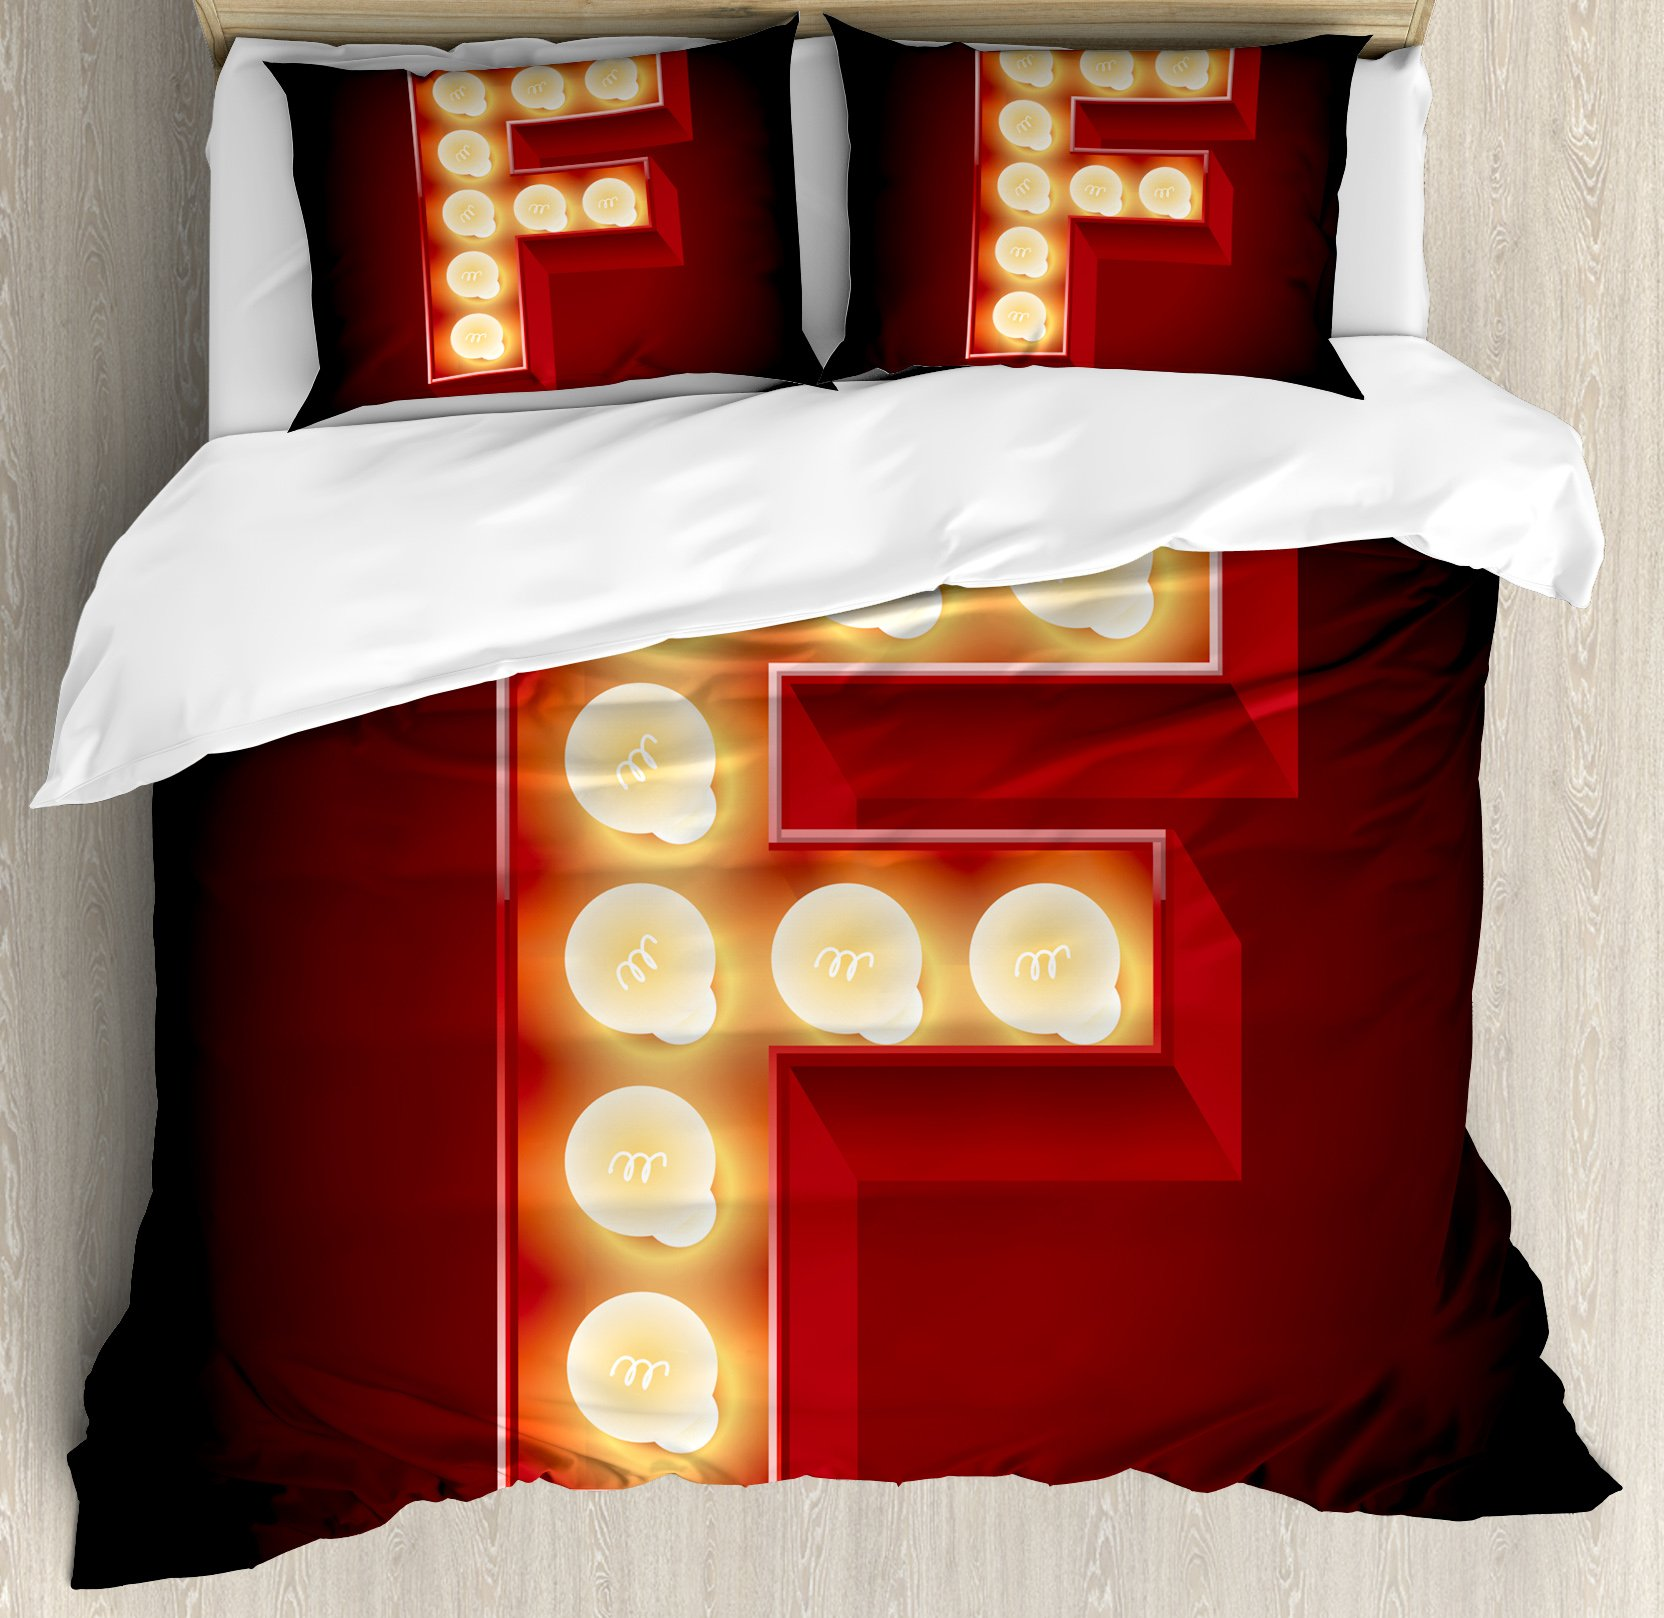 Letter F King Size Duvet Cover Set by Ambesonne, Capital F Typescript Nightlife Disco Clubs Casino Movie Theater Font Print, Decorative 3 Piece Bedding Set with 2 Pillow Shams, Ruby Yellow Black